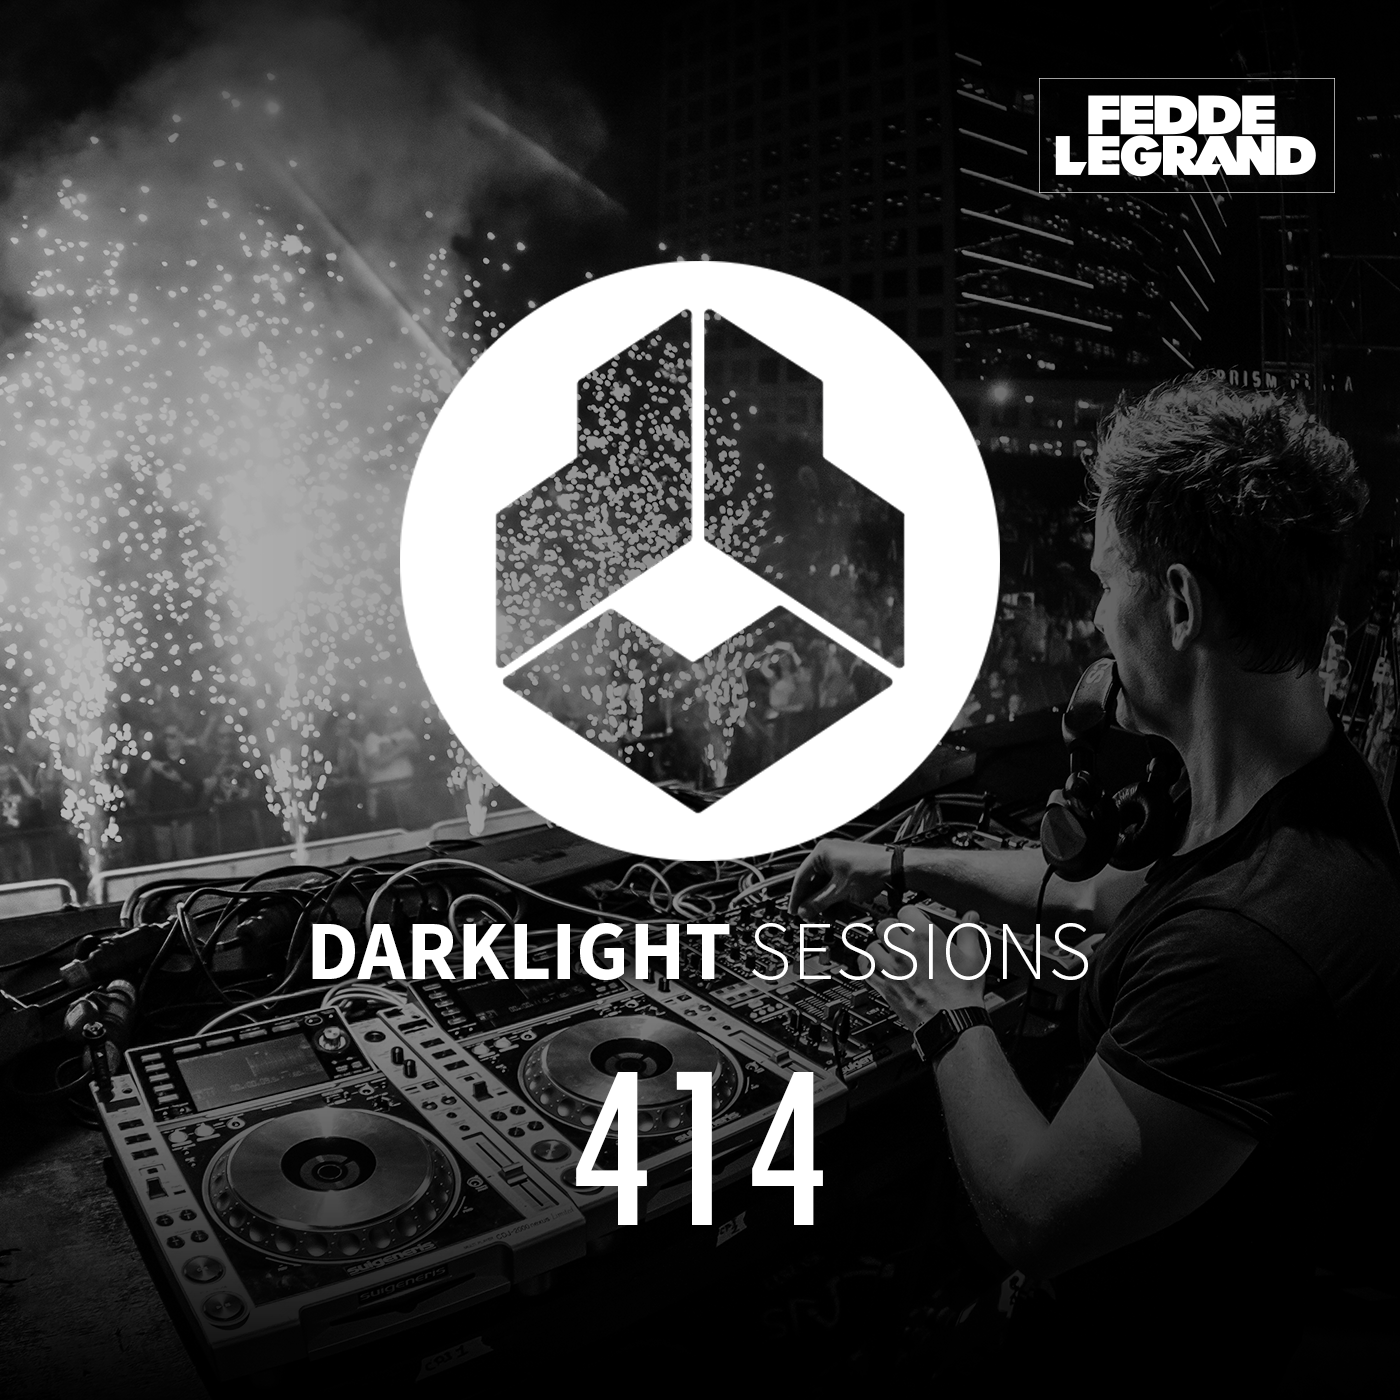 Darklight Sessions 414